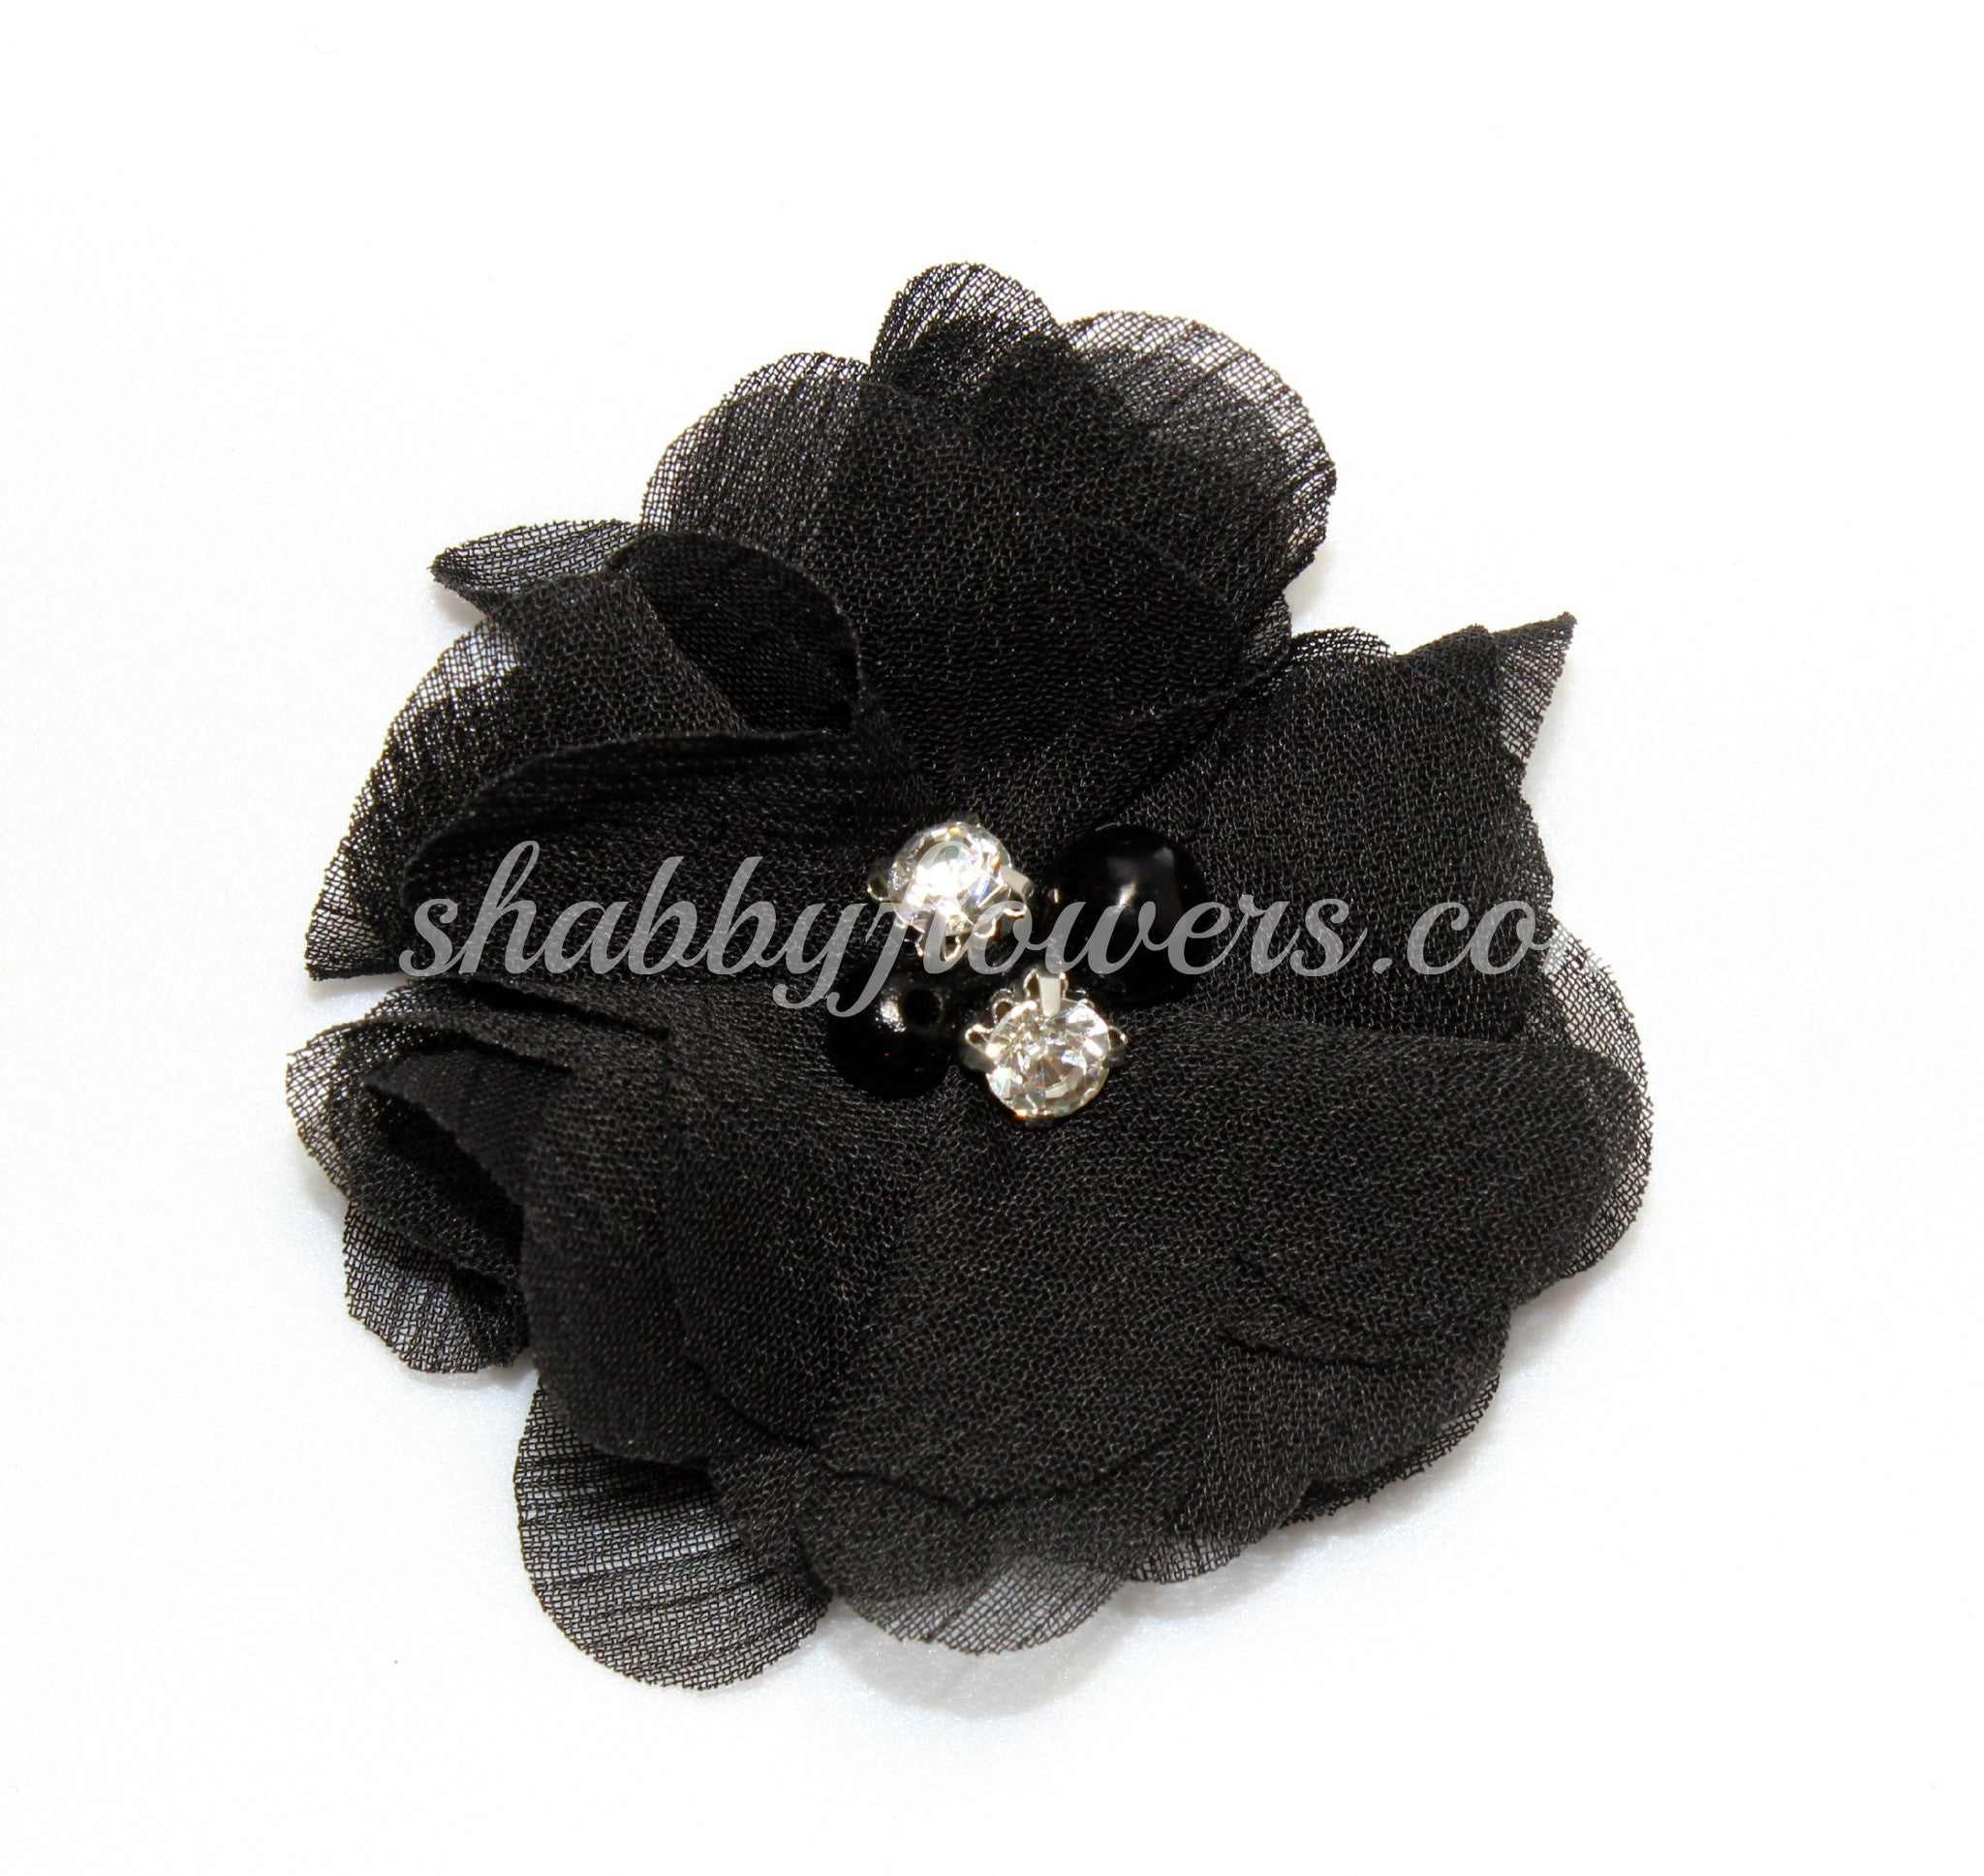 Pearl & Rhinestone Flower - Black - shabbyflowers.com